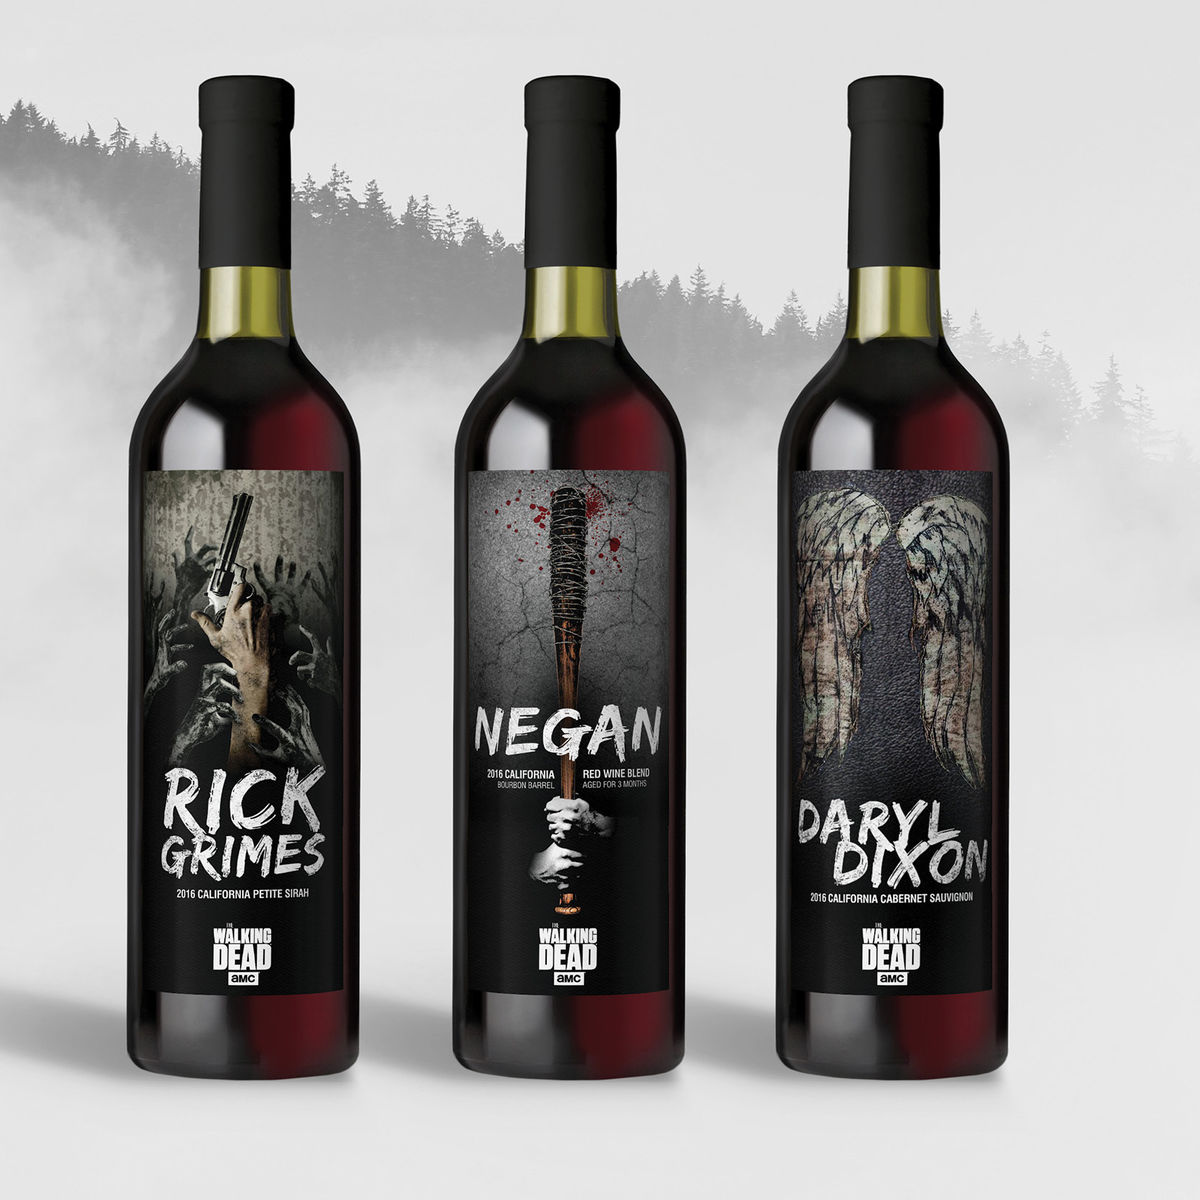 des-3442-the-walking-dead-bottle-launch-social-email-and-boutique-social_02_01.jpg